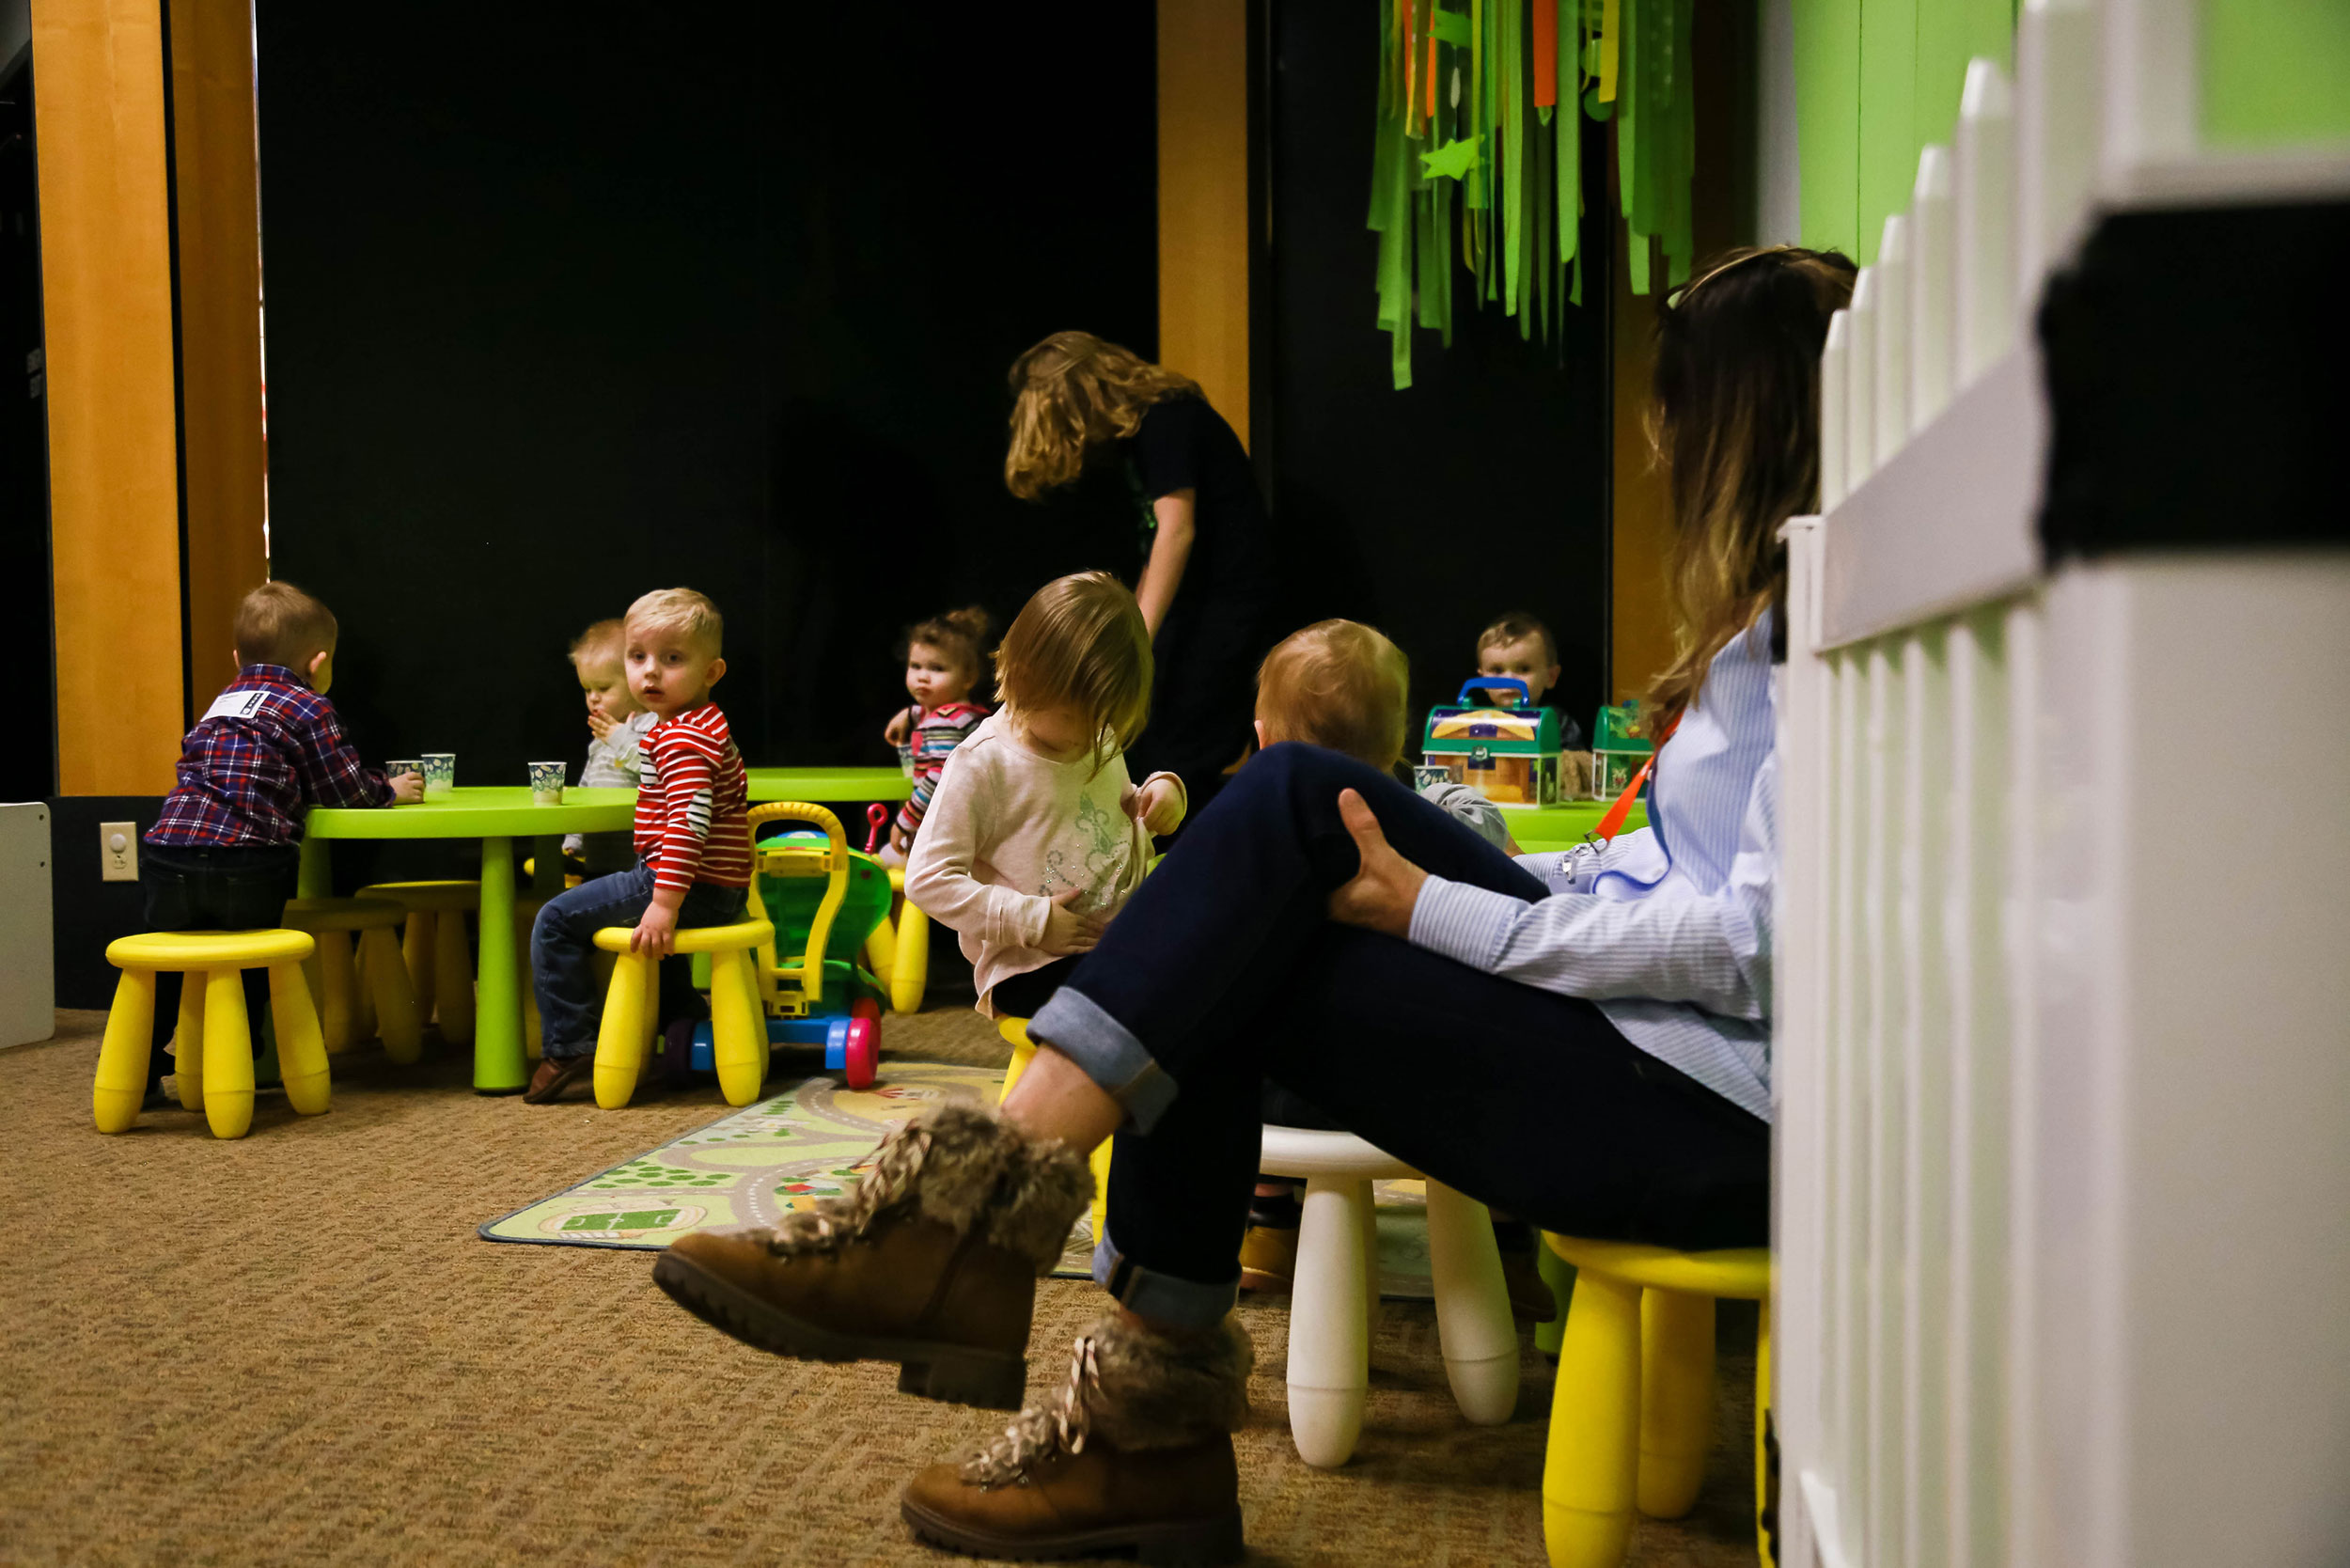 Toddlers play at activity tables as volunteers assist